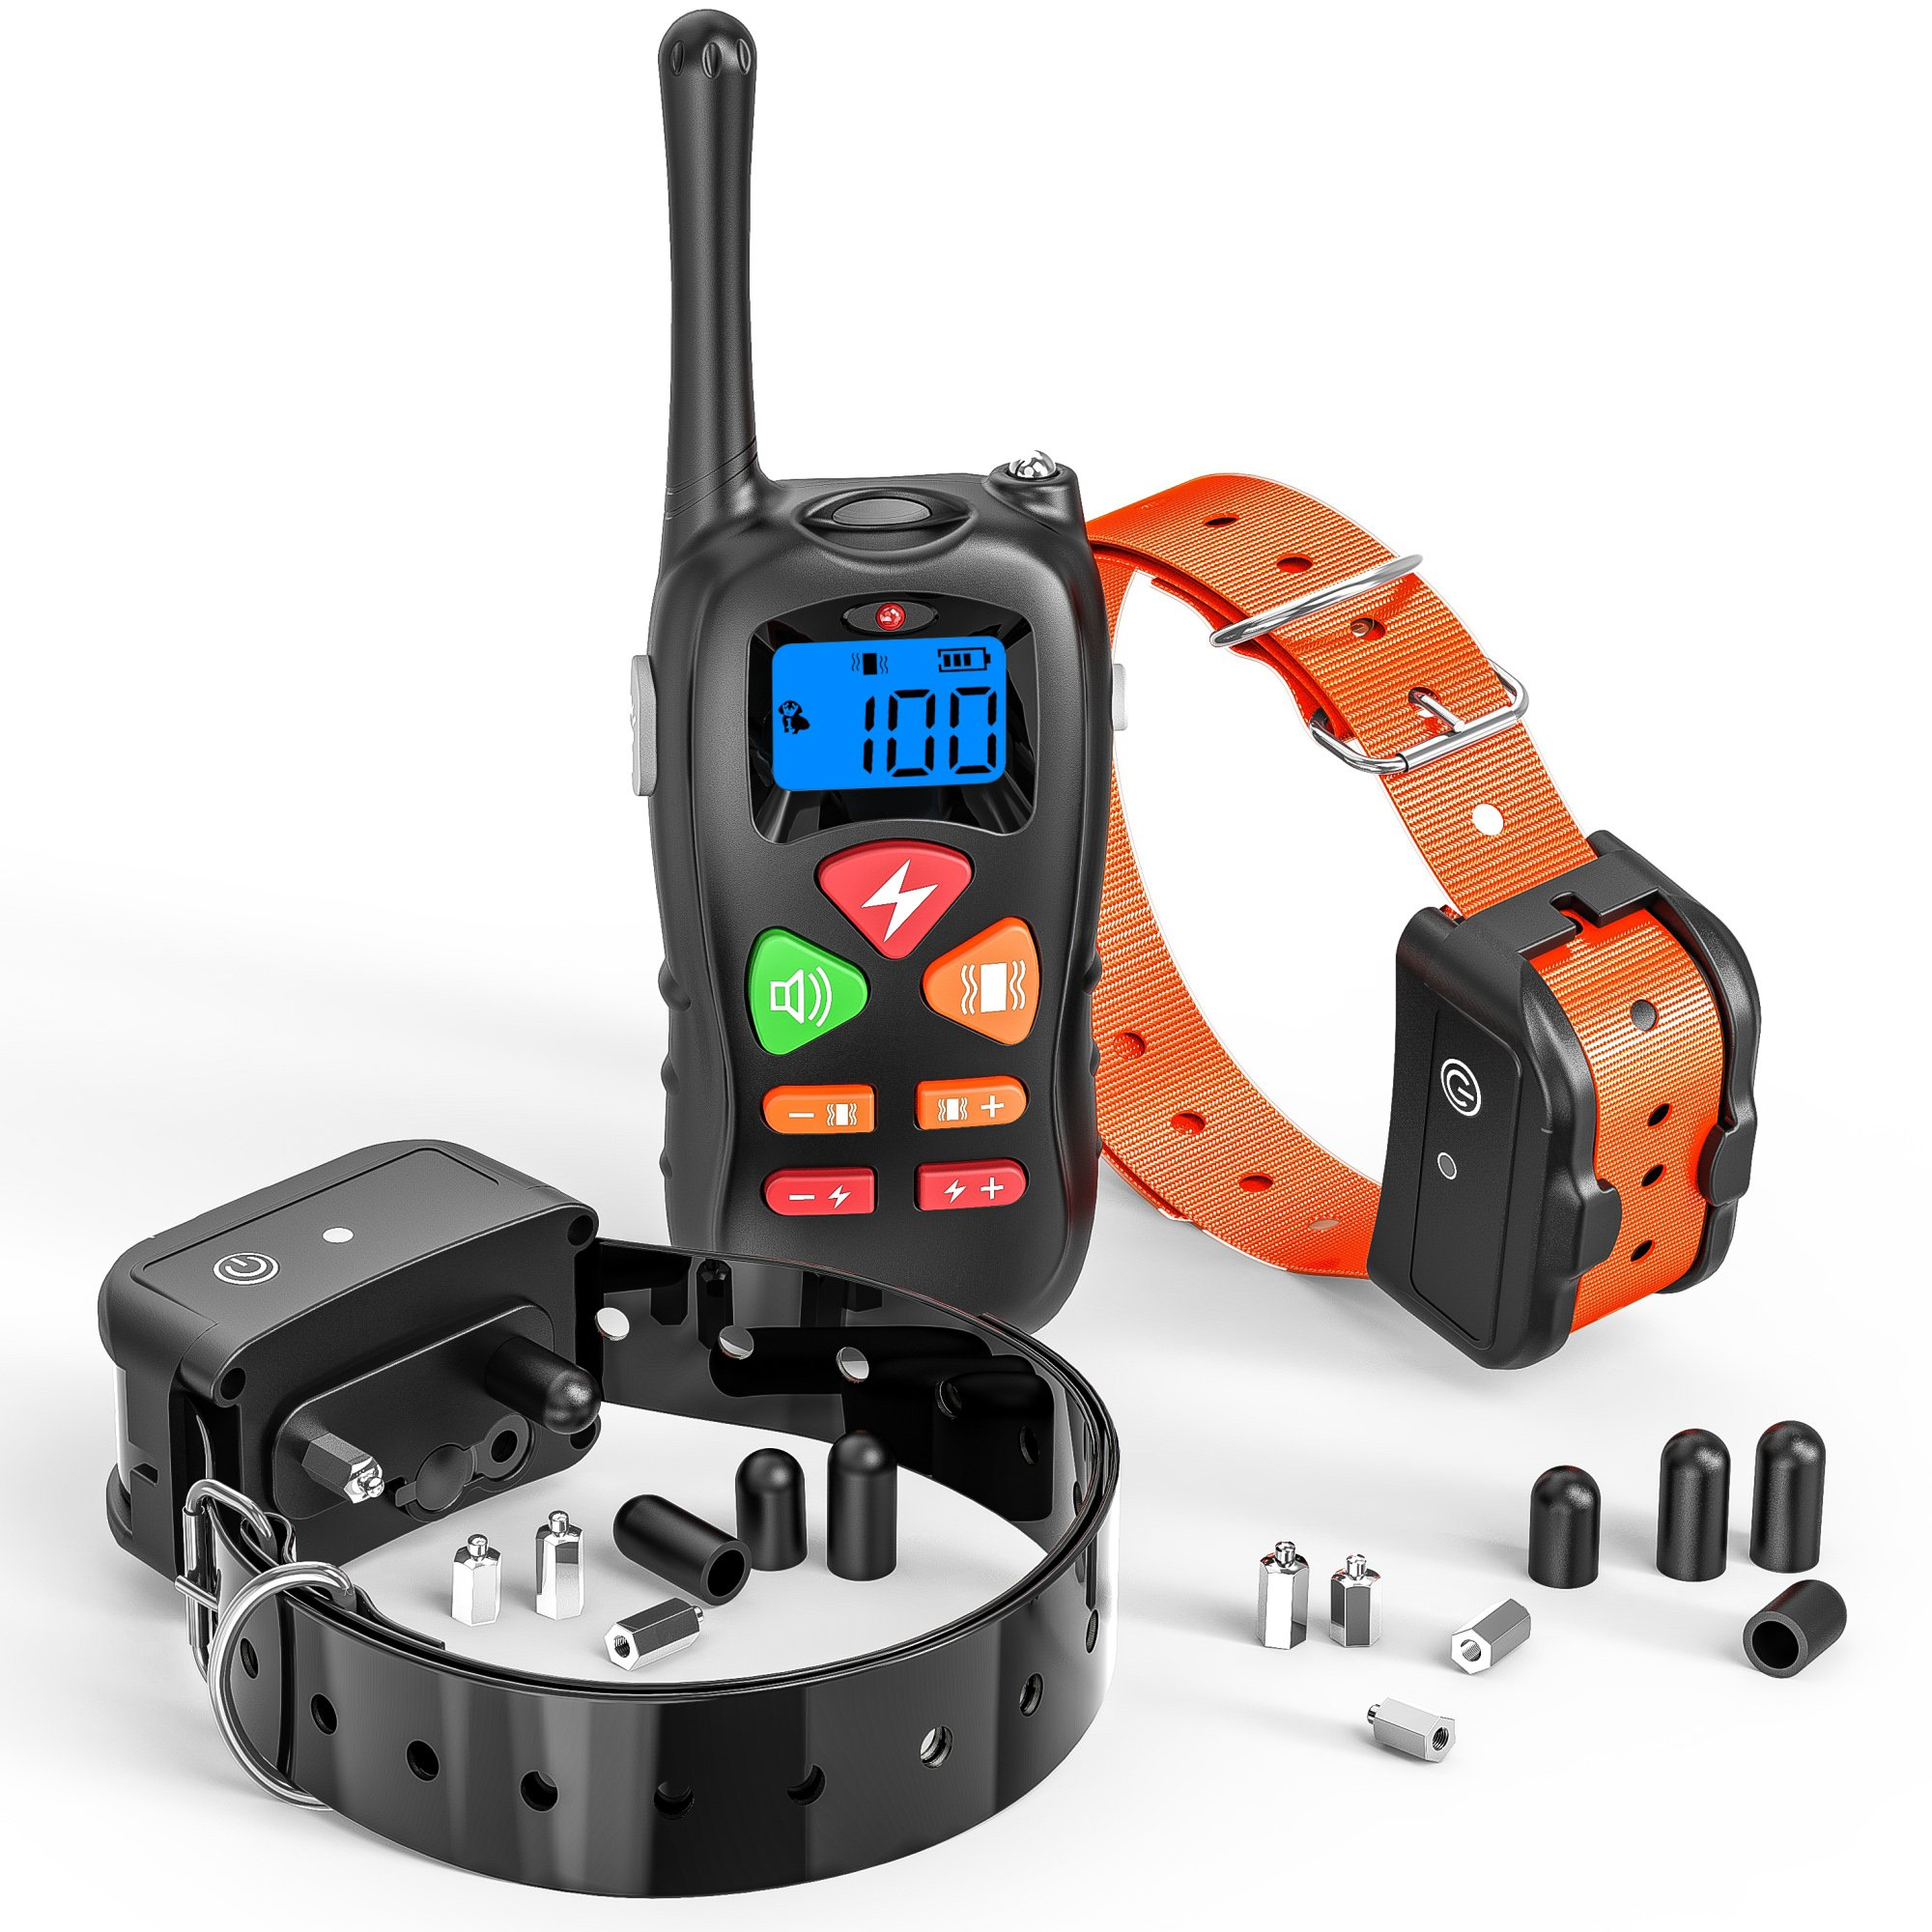 Dog Training Collar, Cambond Dual Dog Shock Collar with remote Waterproof and Rechargeable Electronic Dog Collar for Medium and Large Dogs with 3 Training Modes Shock Vibration Beep